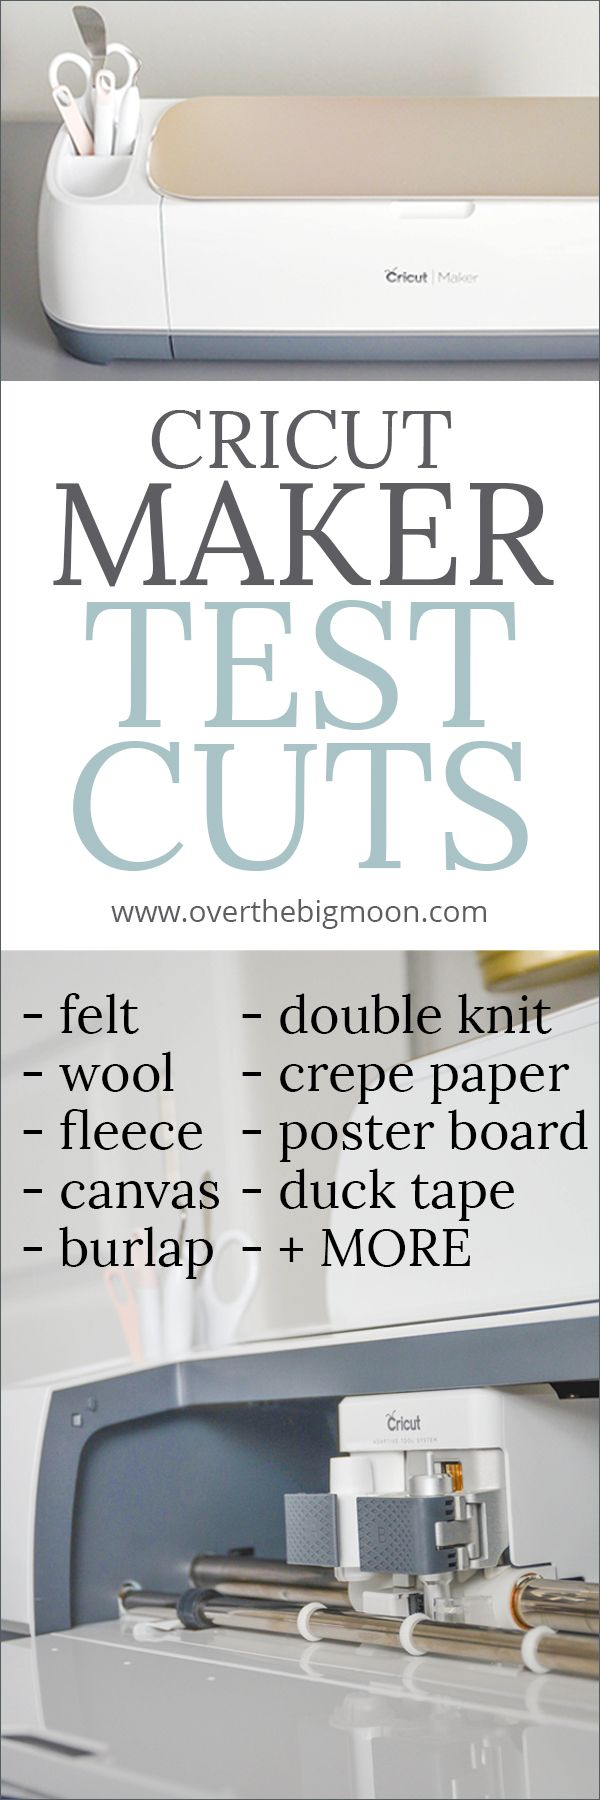 Cricut Maker Materials Testing - come watch videos of the Cricut Maker testing out tons of different materials! From overthebigmoon.com!